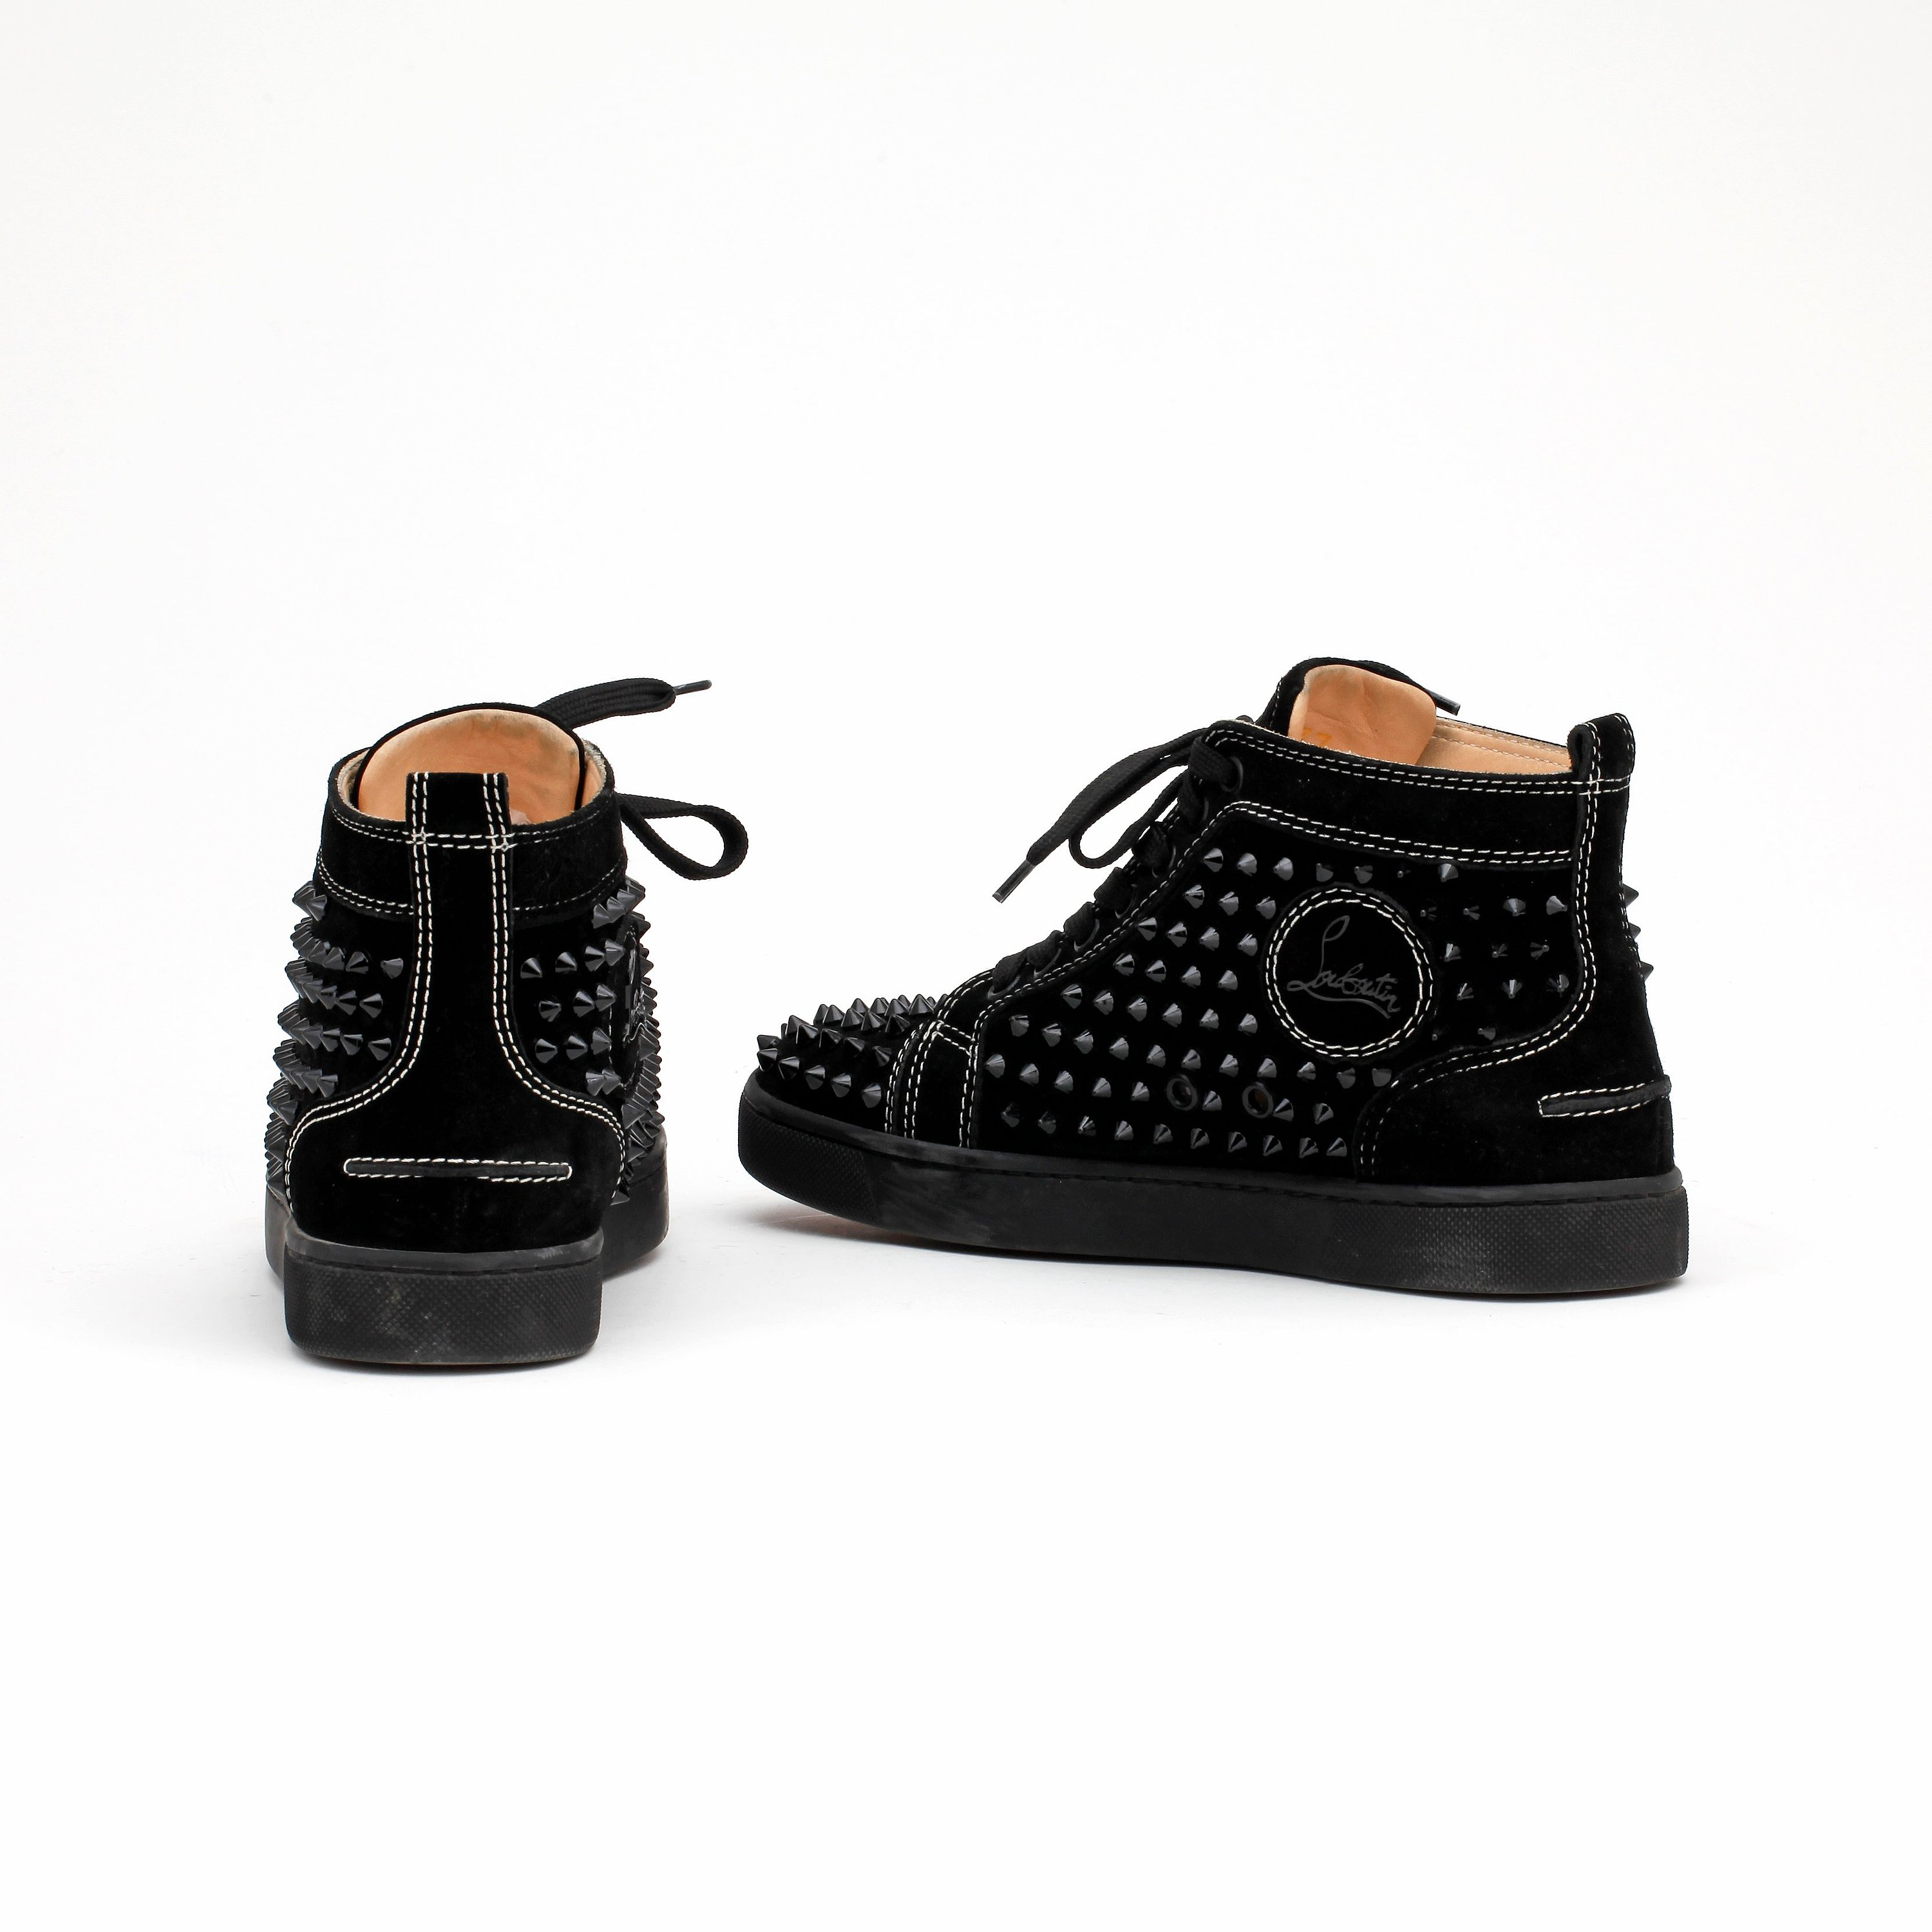 info for eb6b9 d2fef CHRISTIAN LOUBOUTIN, a pair of black suede sneakers,